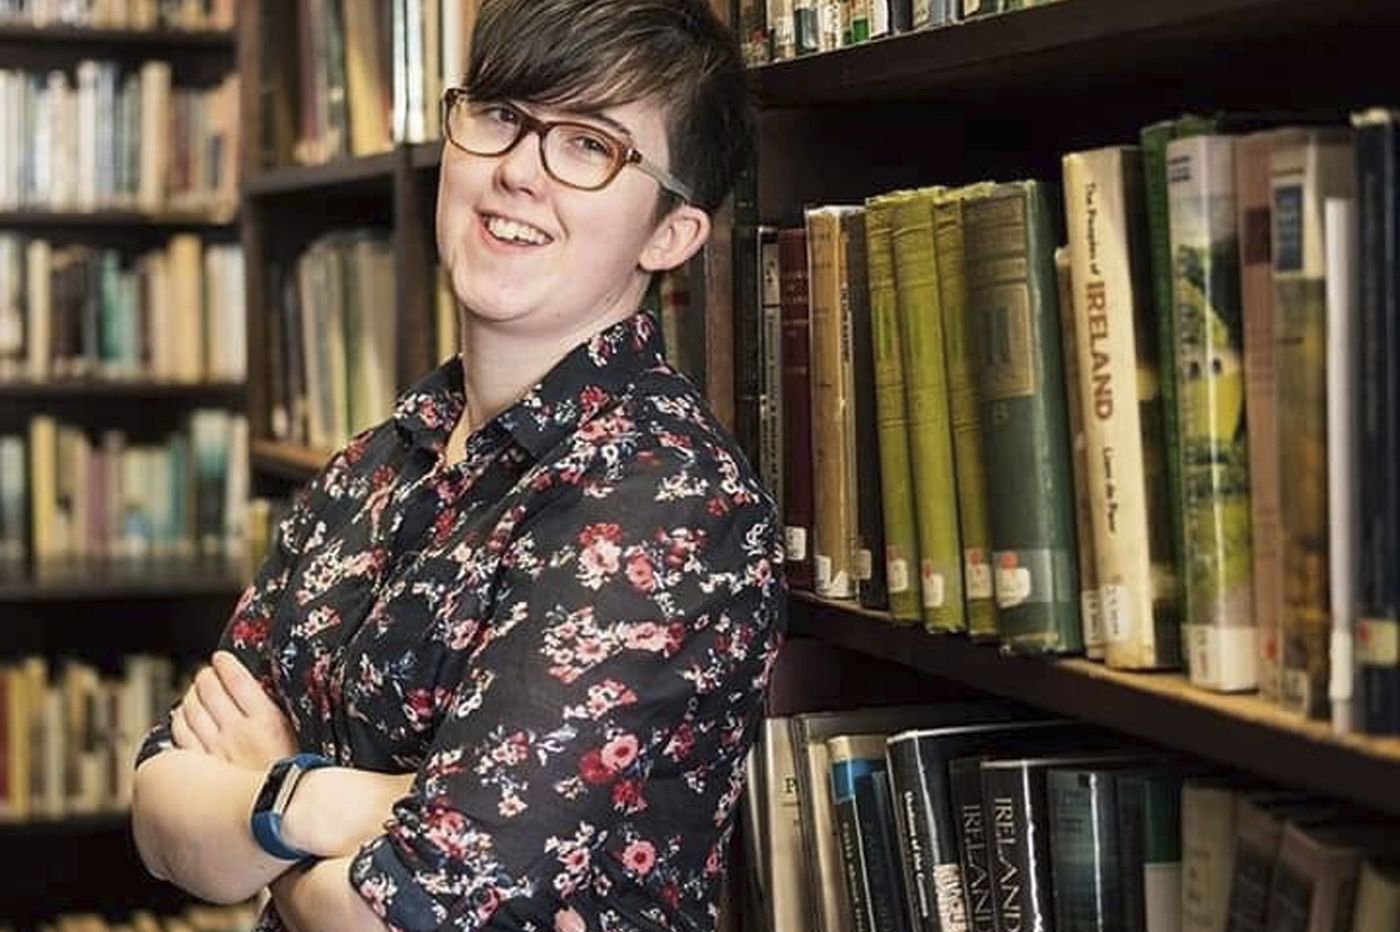 Lyra McKee: New IRA releases 'full and honest apologies' statement over killing